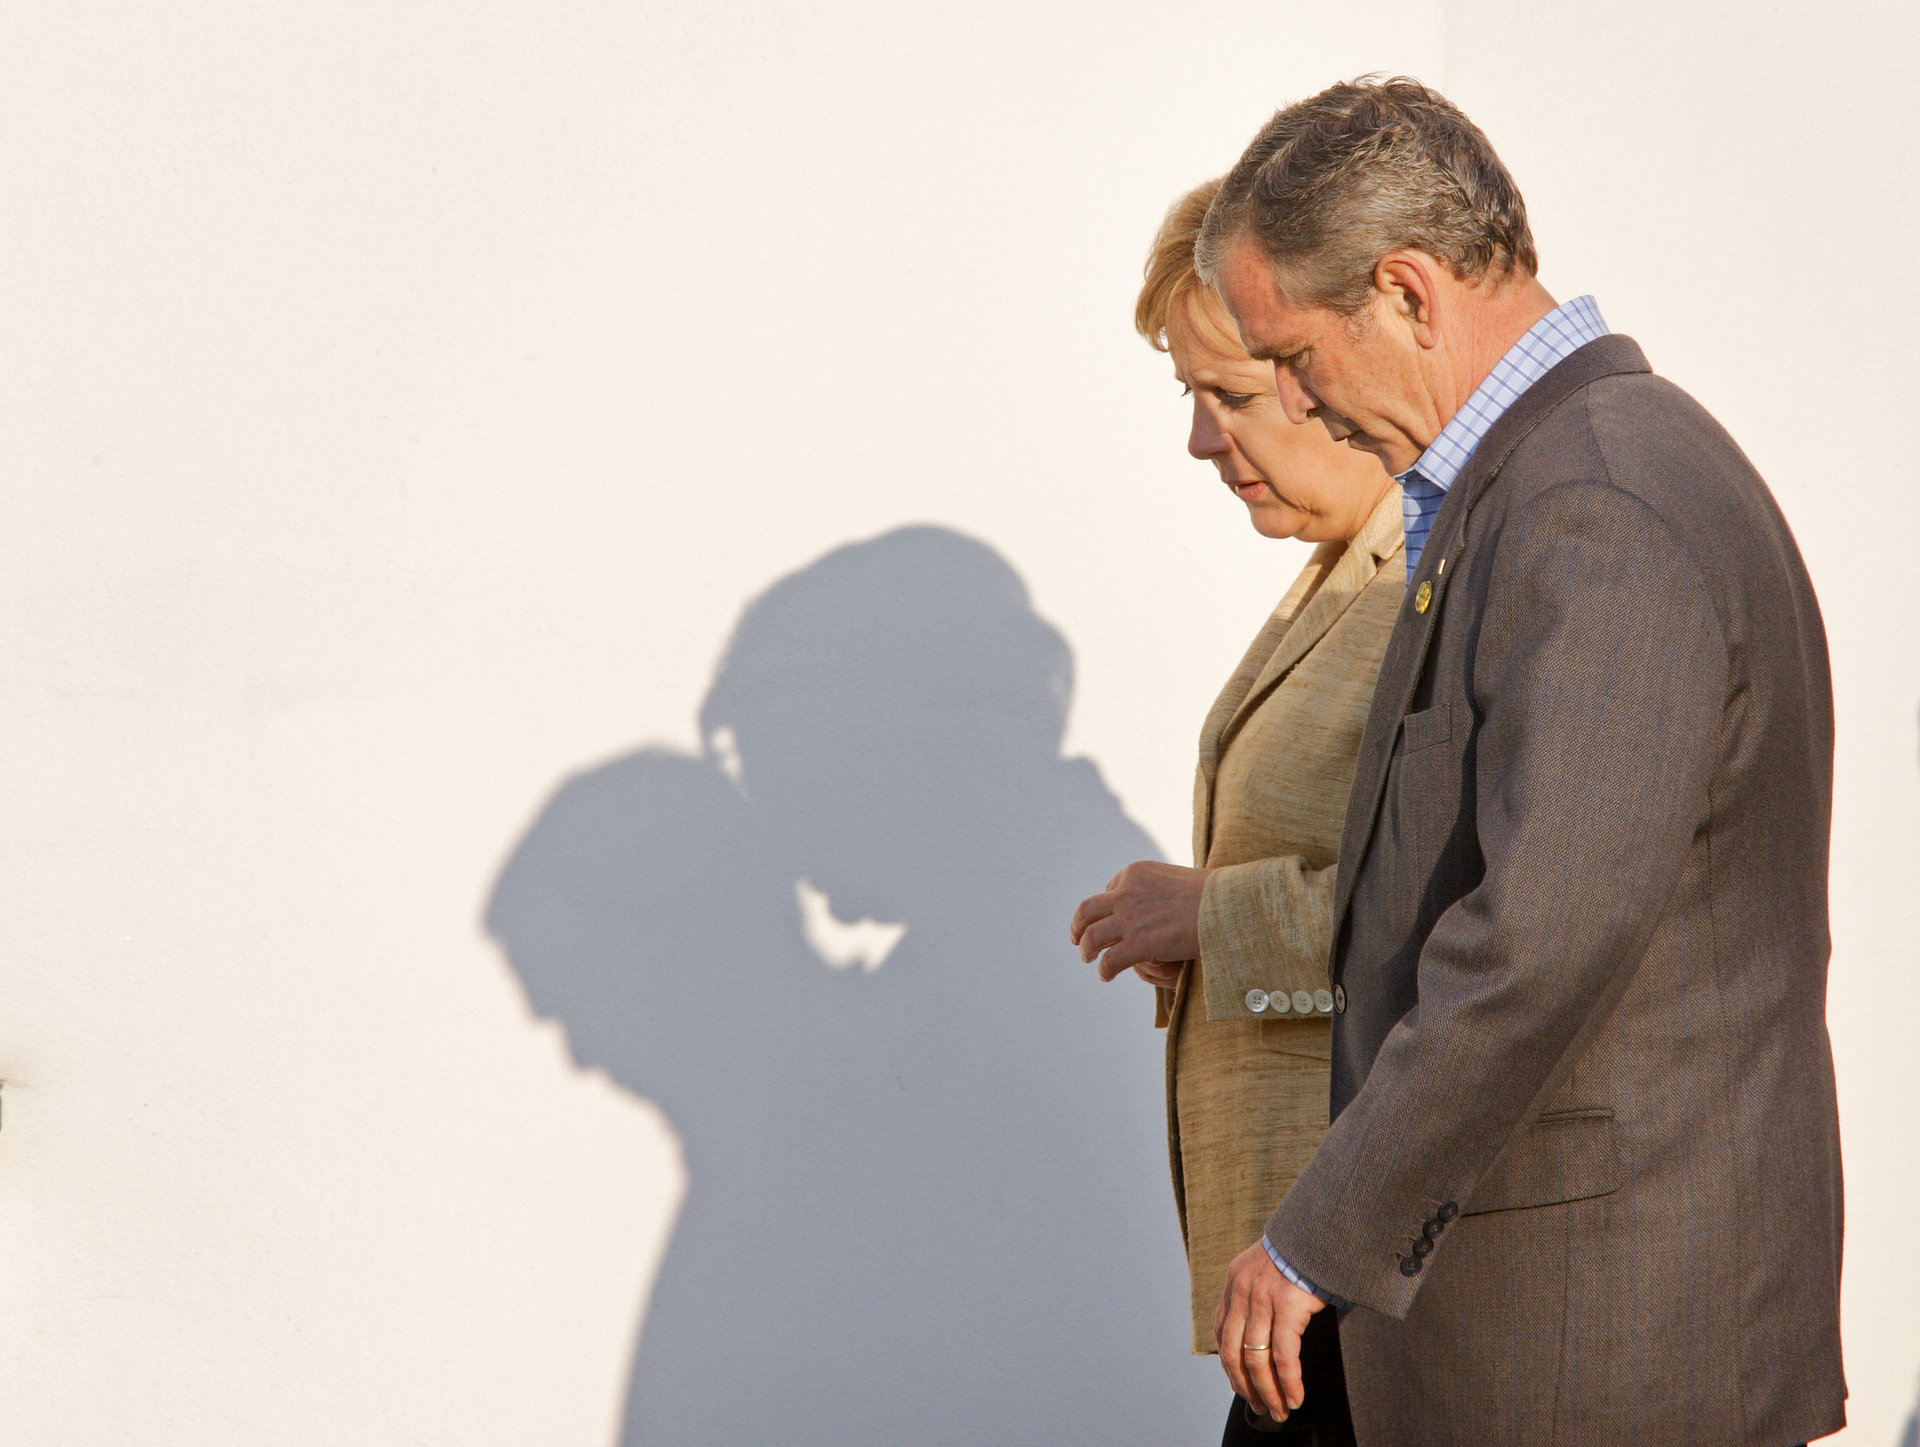 Angela Merkel and George W. Bush